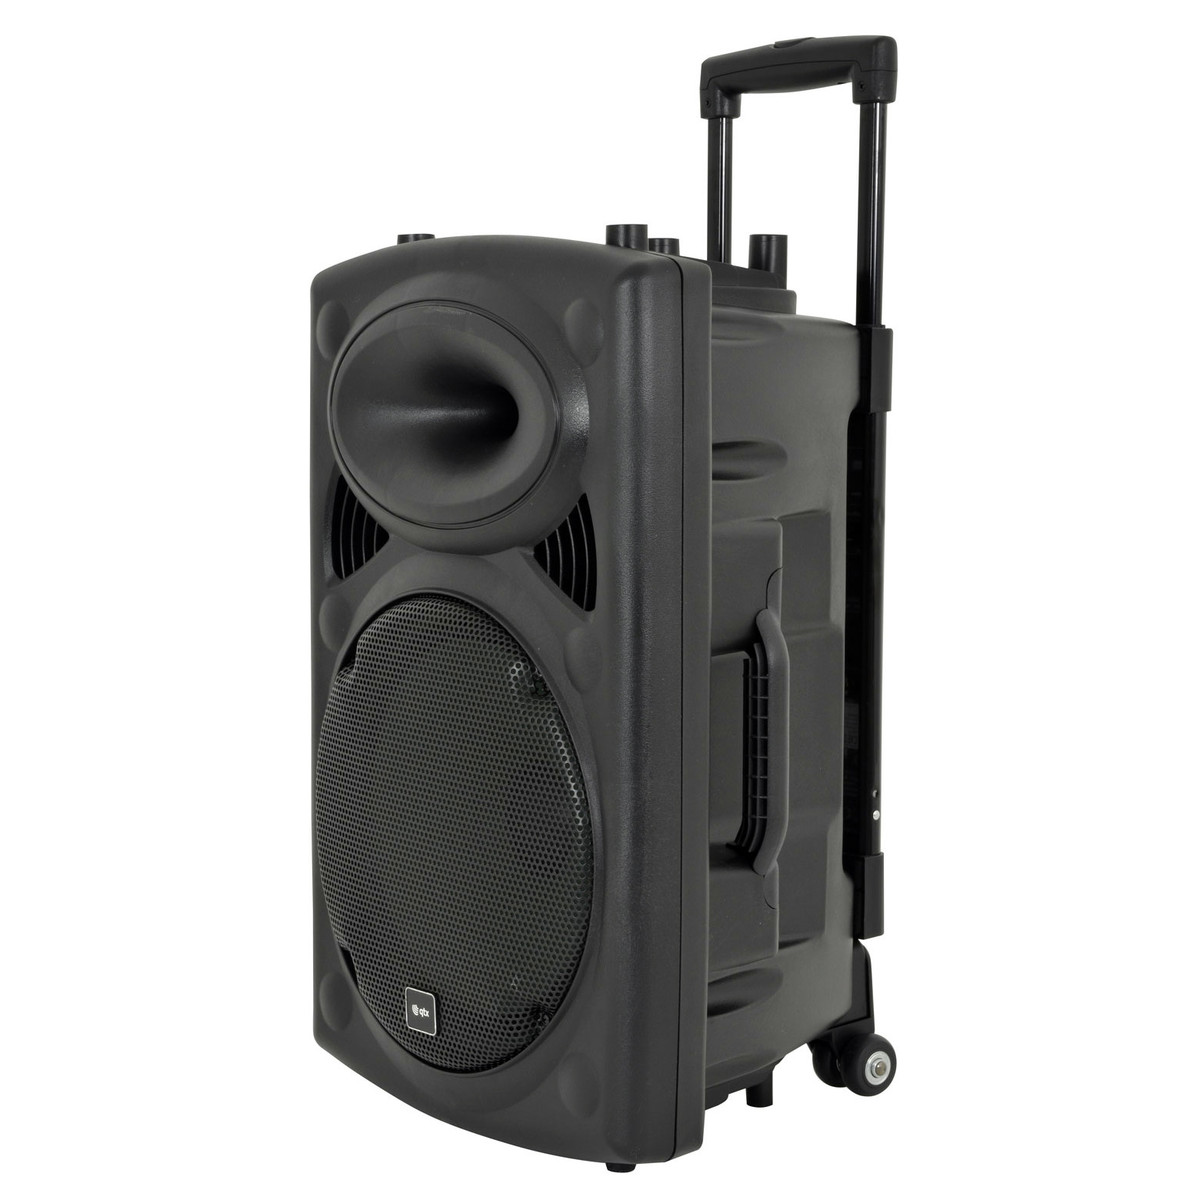 qtx qr12pa portable pa system with wireless mics at gear4music. Black Bedroom Furniture Sets. Home Design Ideas